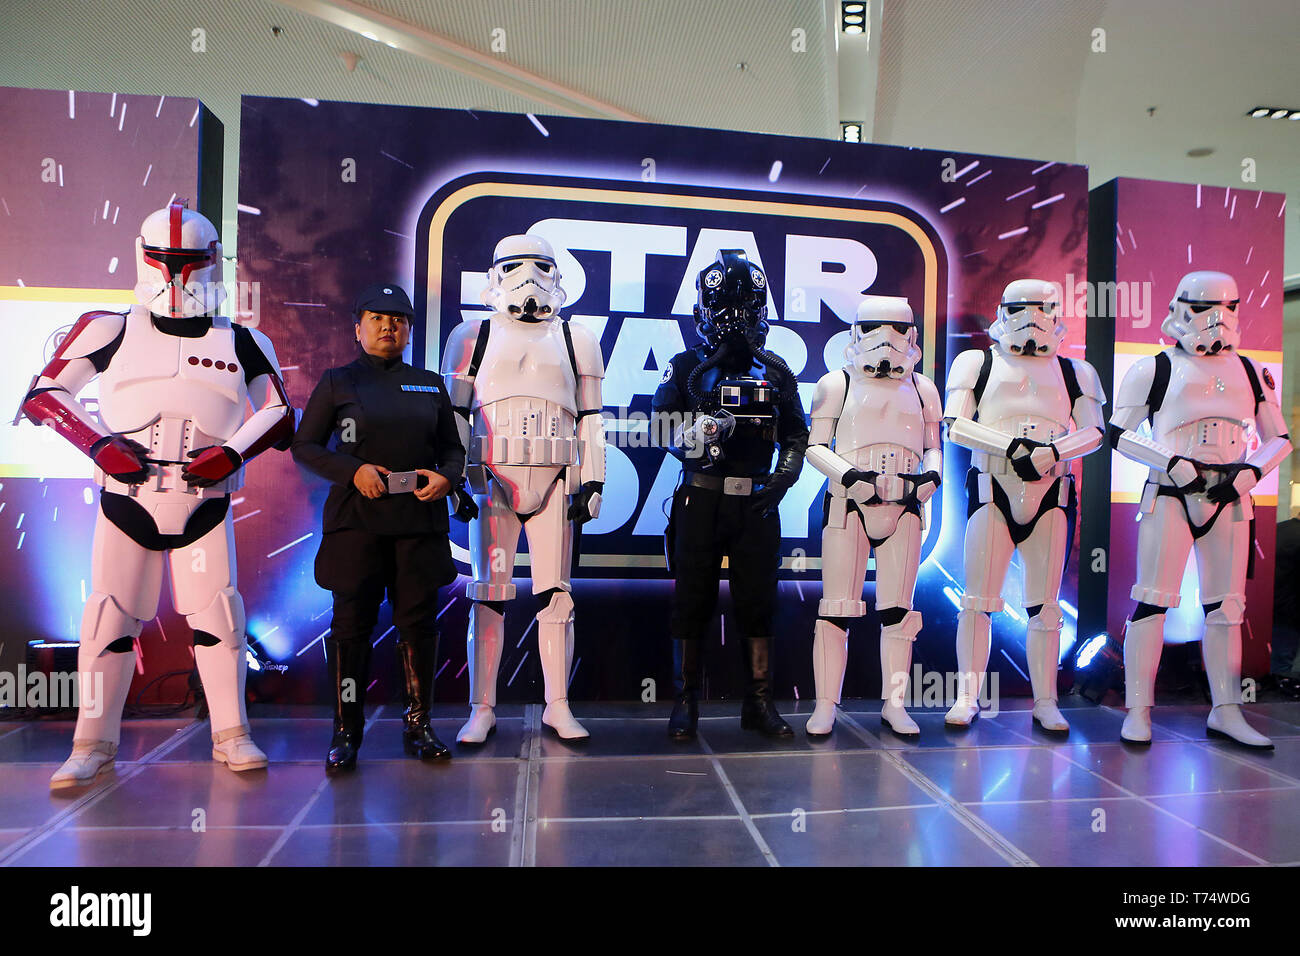 Taguig City, Philippines. 4th May, 2019. People dressed as Star Wars characters gather as they participate in the Star Wars Day in a mall in Taguig, the Philippines, May 4, 2019. The Star Wars Day is celebrated on May 4 every year by the fans of the sci-fi movie series in different parts of the world. Credit: ROUELLE UMALI/Xinhua/Alamy Live News - Stock Image